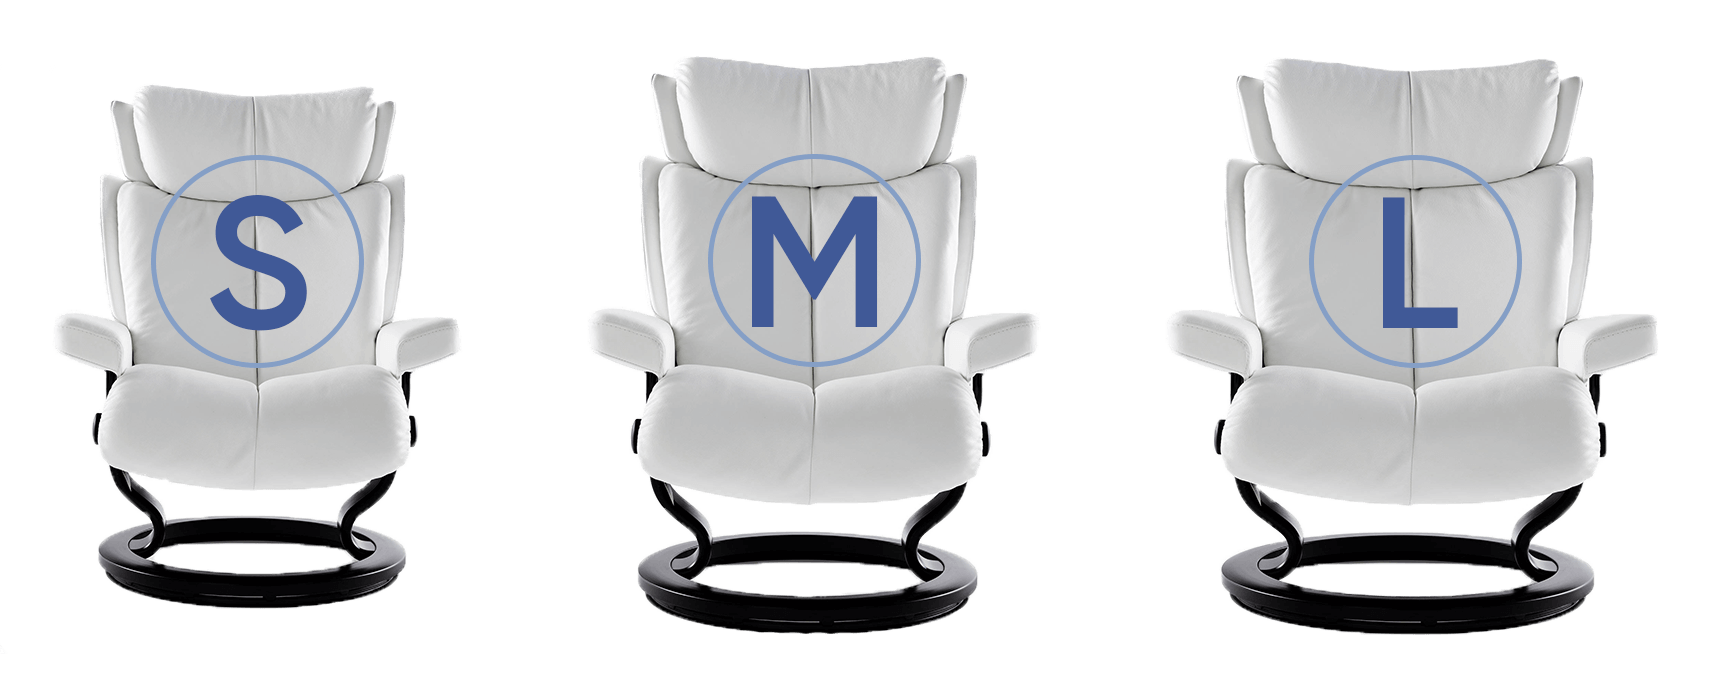 stressless small medium large chairs